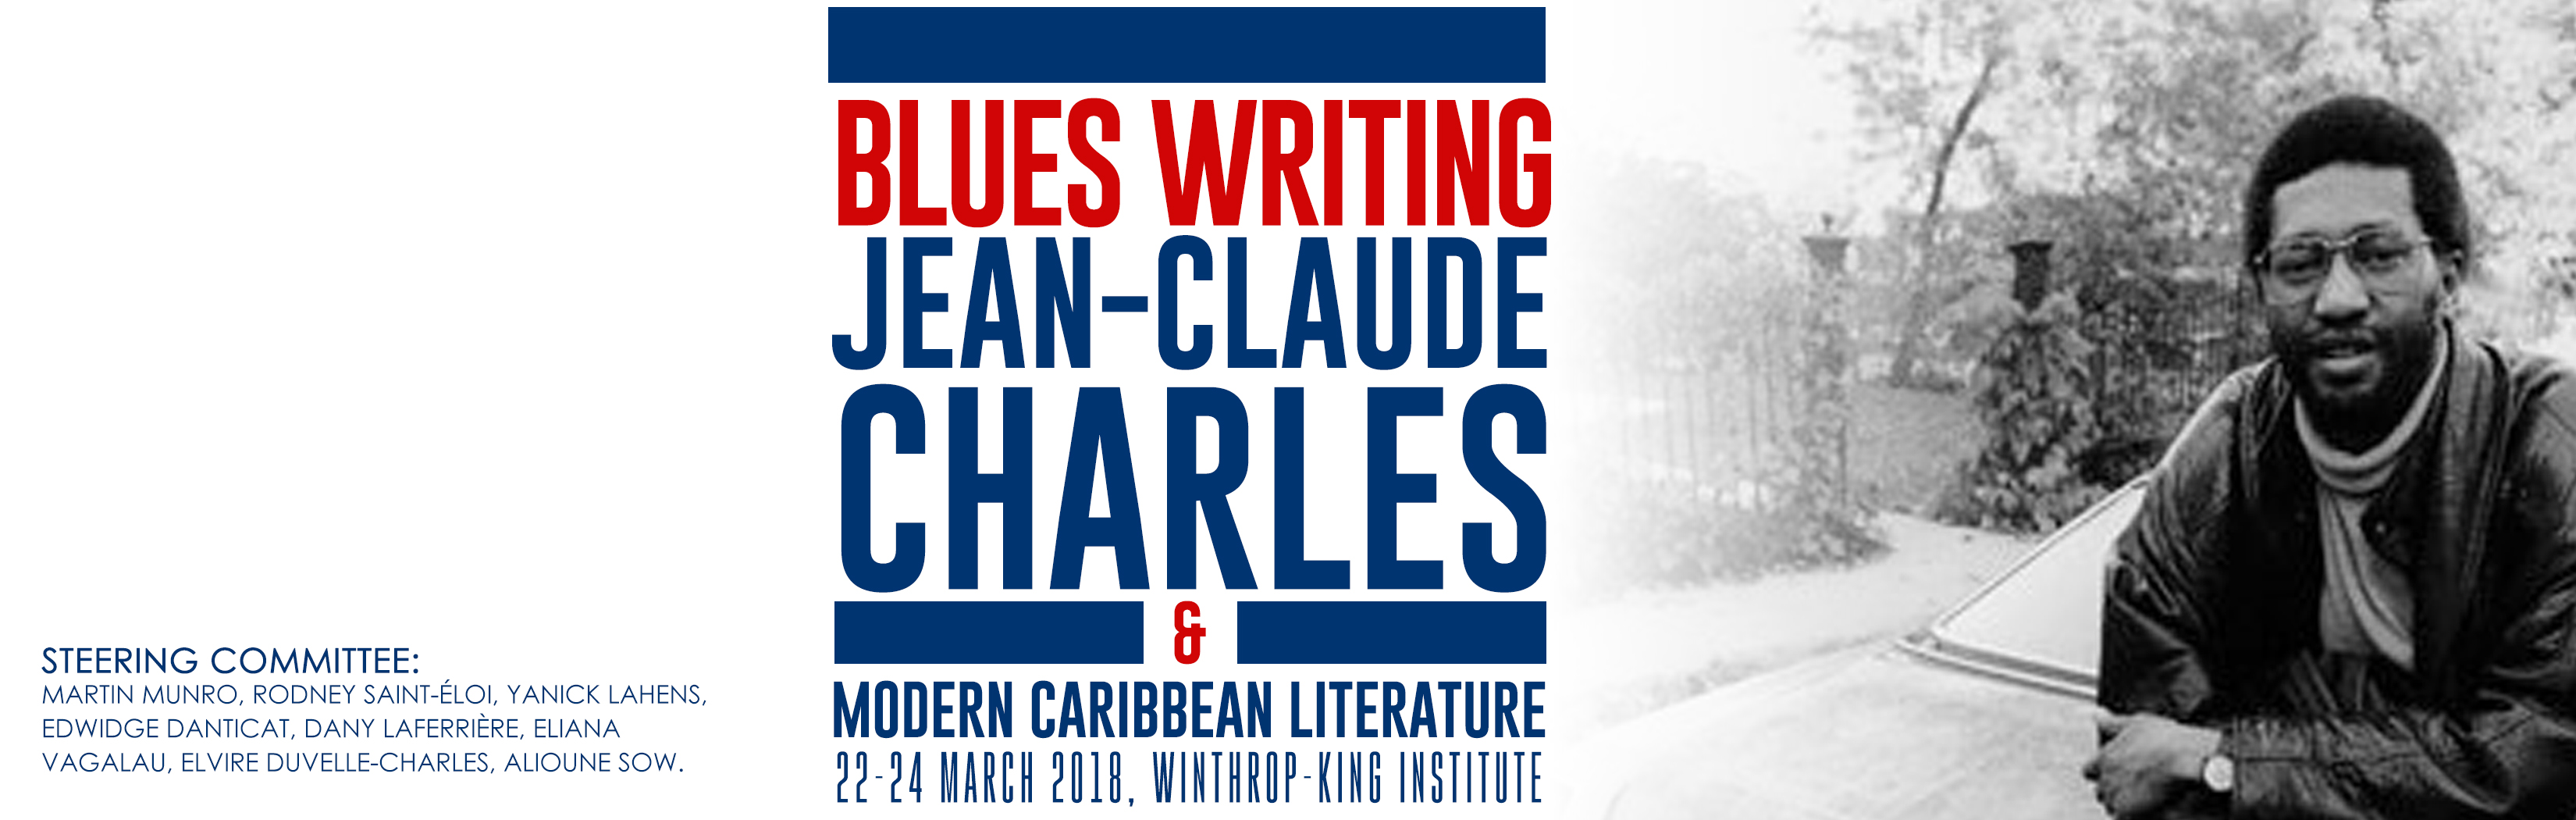 Jean-Claude Charles Event Banner